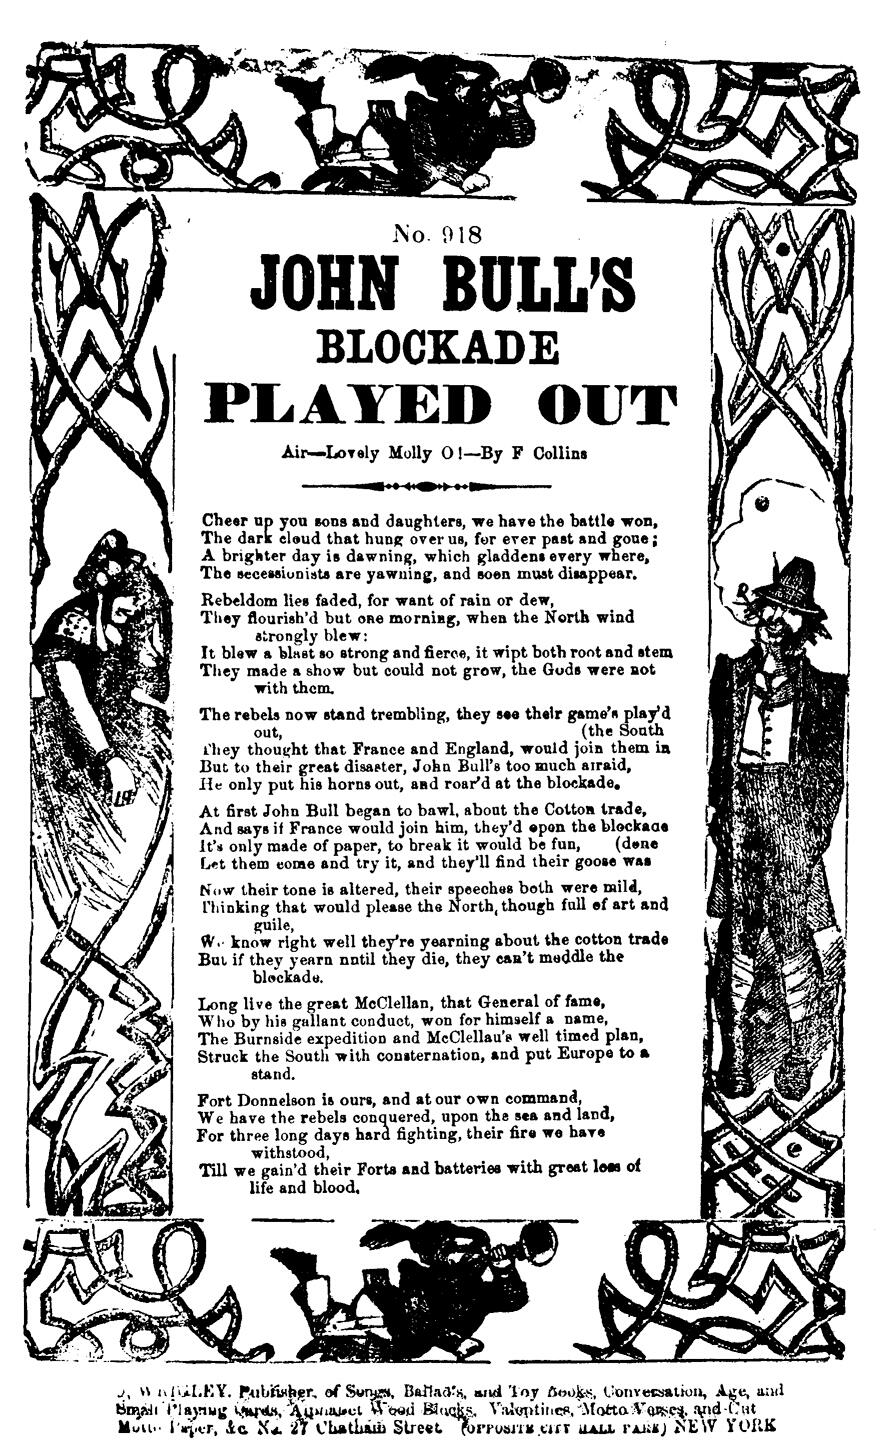 "Though this cartoon comically portrays southern efforts to court English support, the Union was concerned about potential British assistance to From the Union perspective, the blockade was a success, heralded in lyrics like the following: ""The rebels now stand trembling, they see their game's play'd out, They thought that France and England, would join them in the South But to their great disaster, John Bull's too much afraid, He only put his horns out, and roar'd at the blockade."" (Rare Book and Special Collections Division, Library of Congress [cw 103060])"